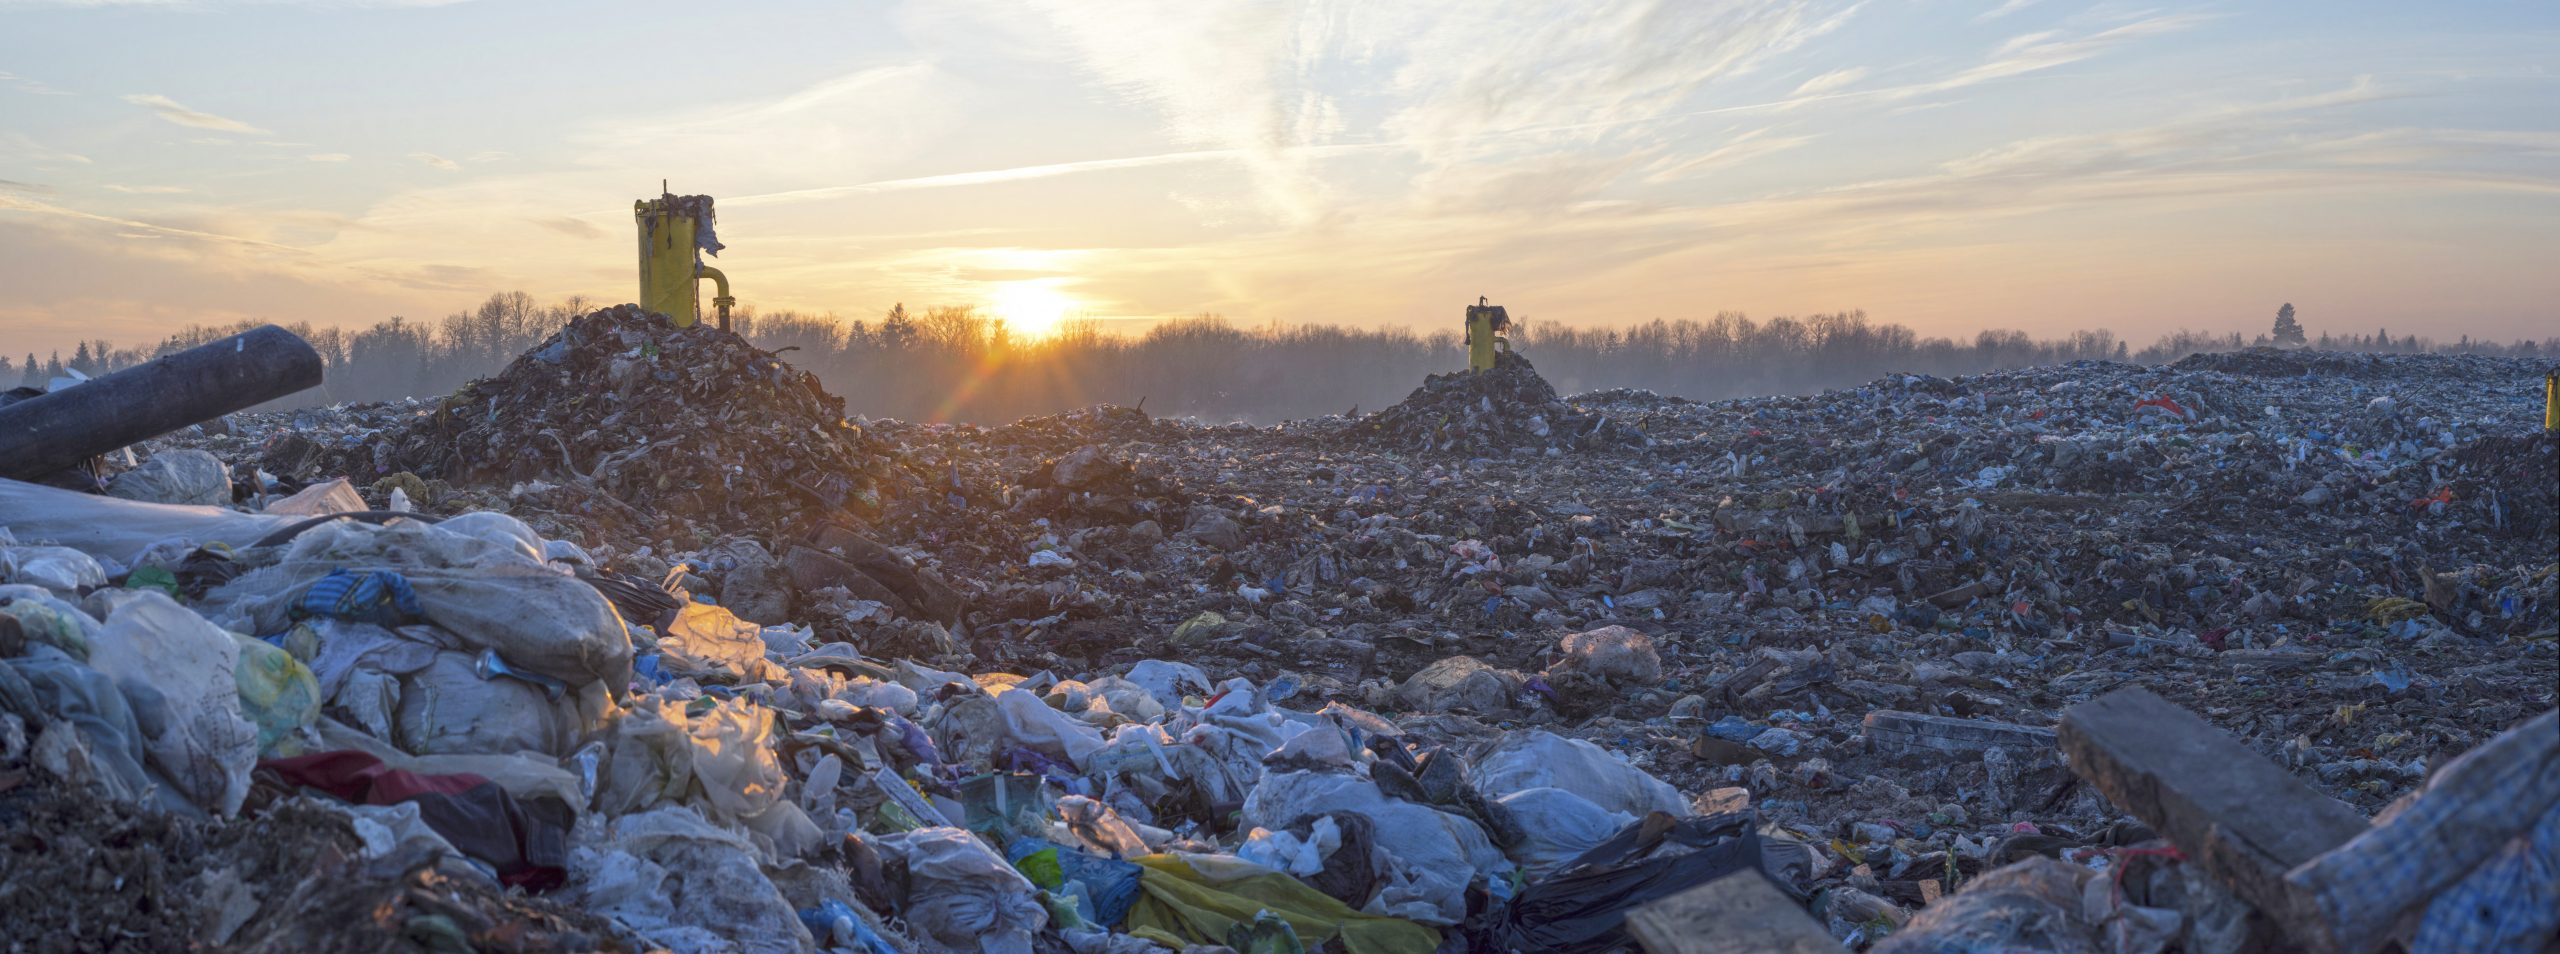 Waste landfill, greenhouse gases, energy from waste